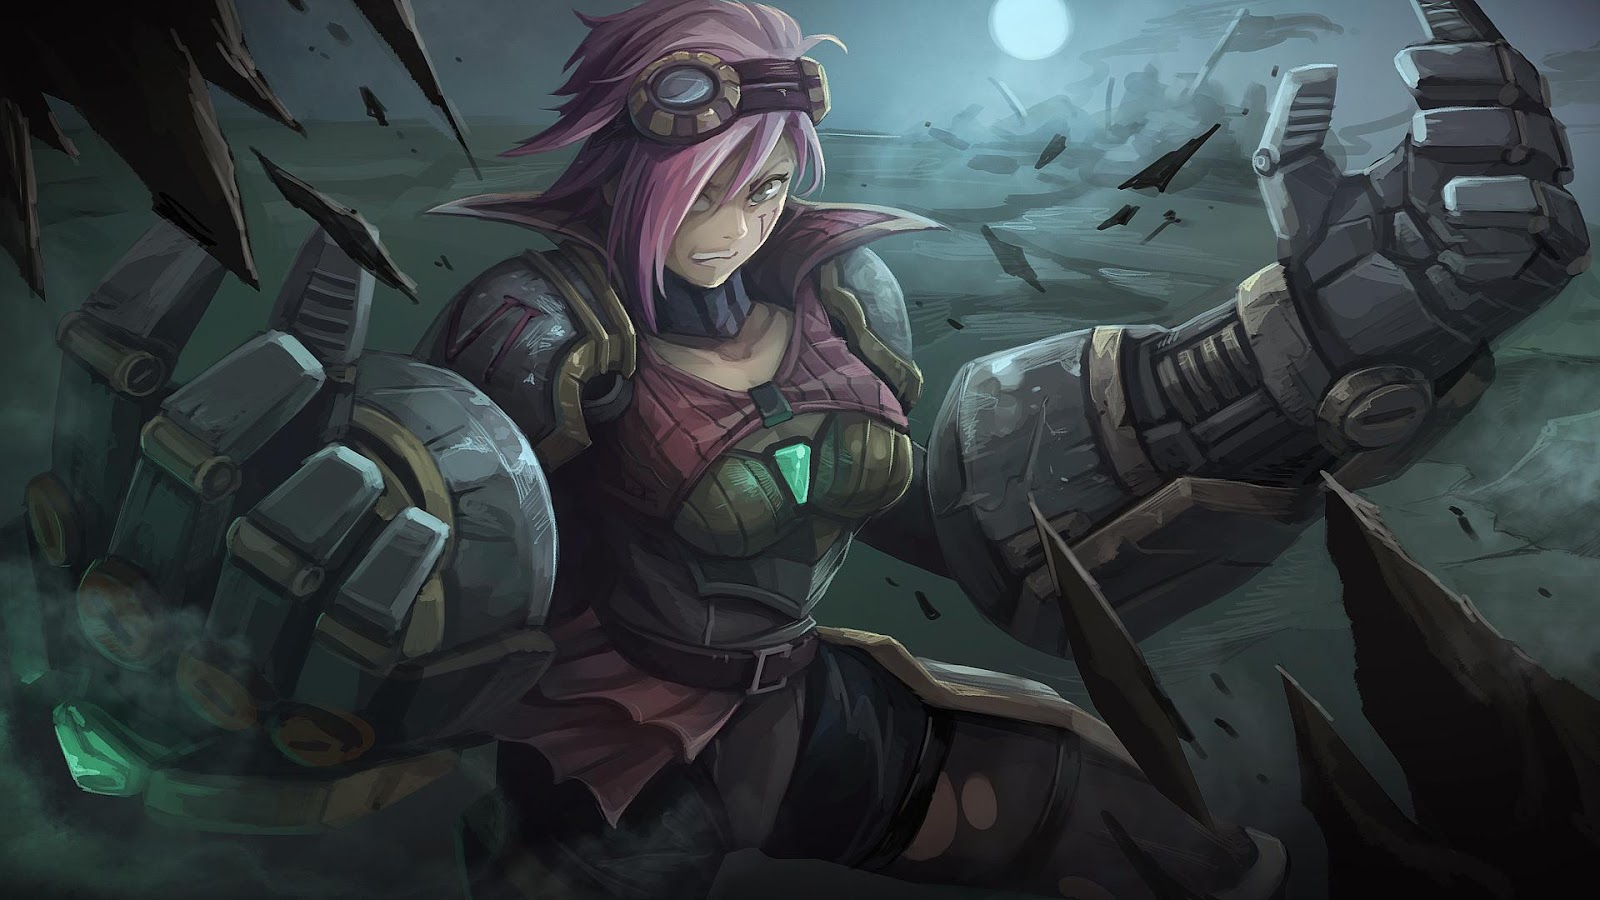 league of legends wallpaper hd,league of legends wallpaper maker,league of legends live